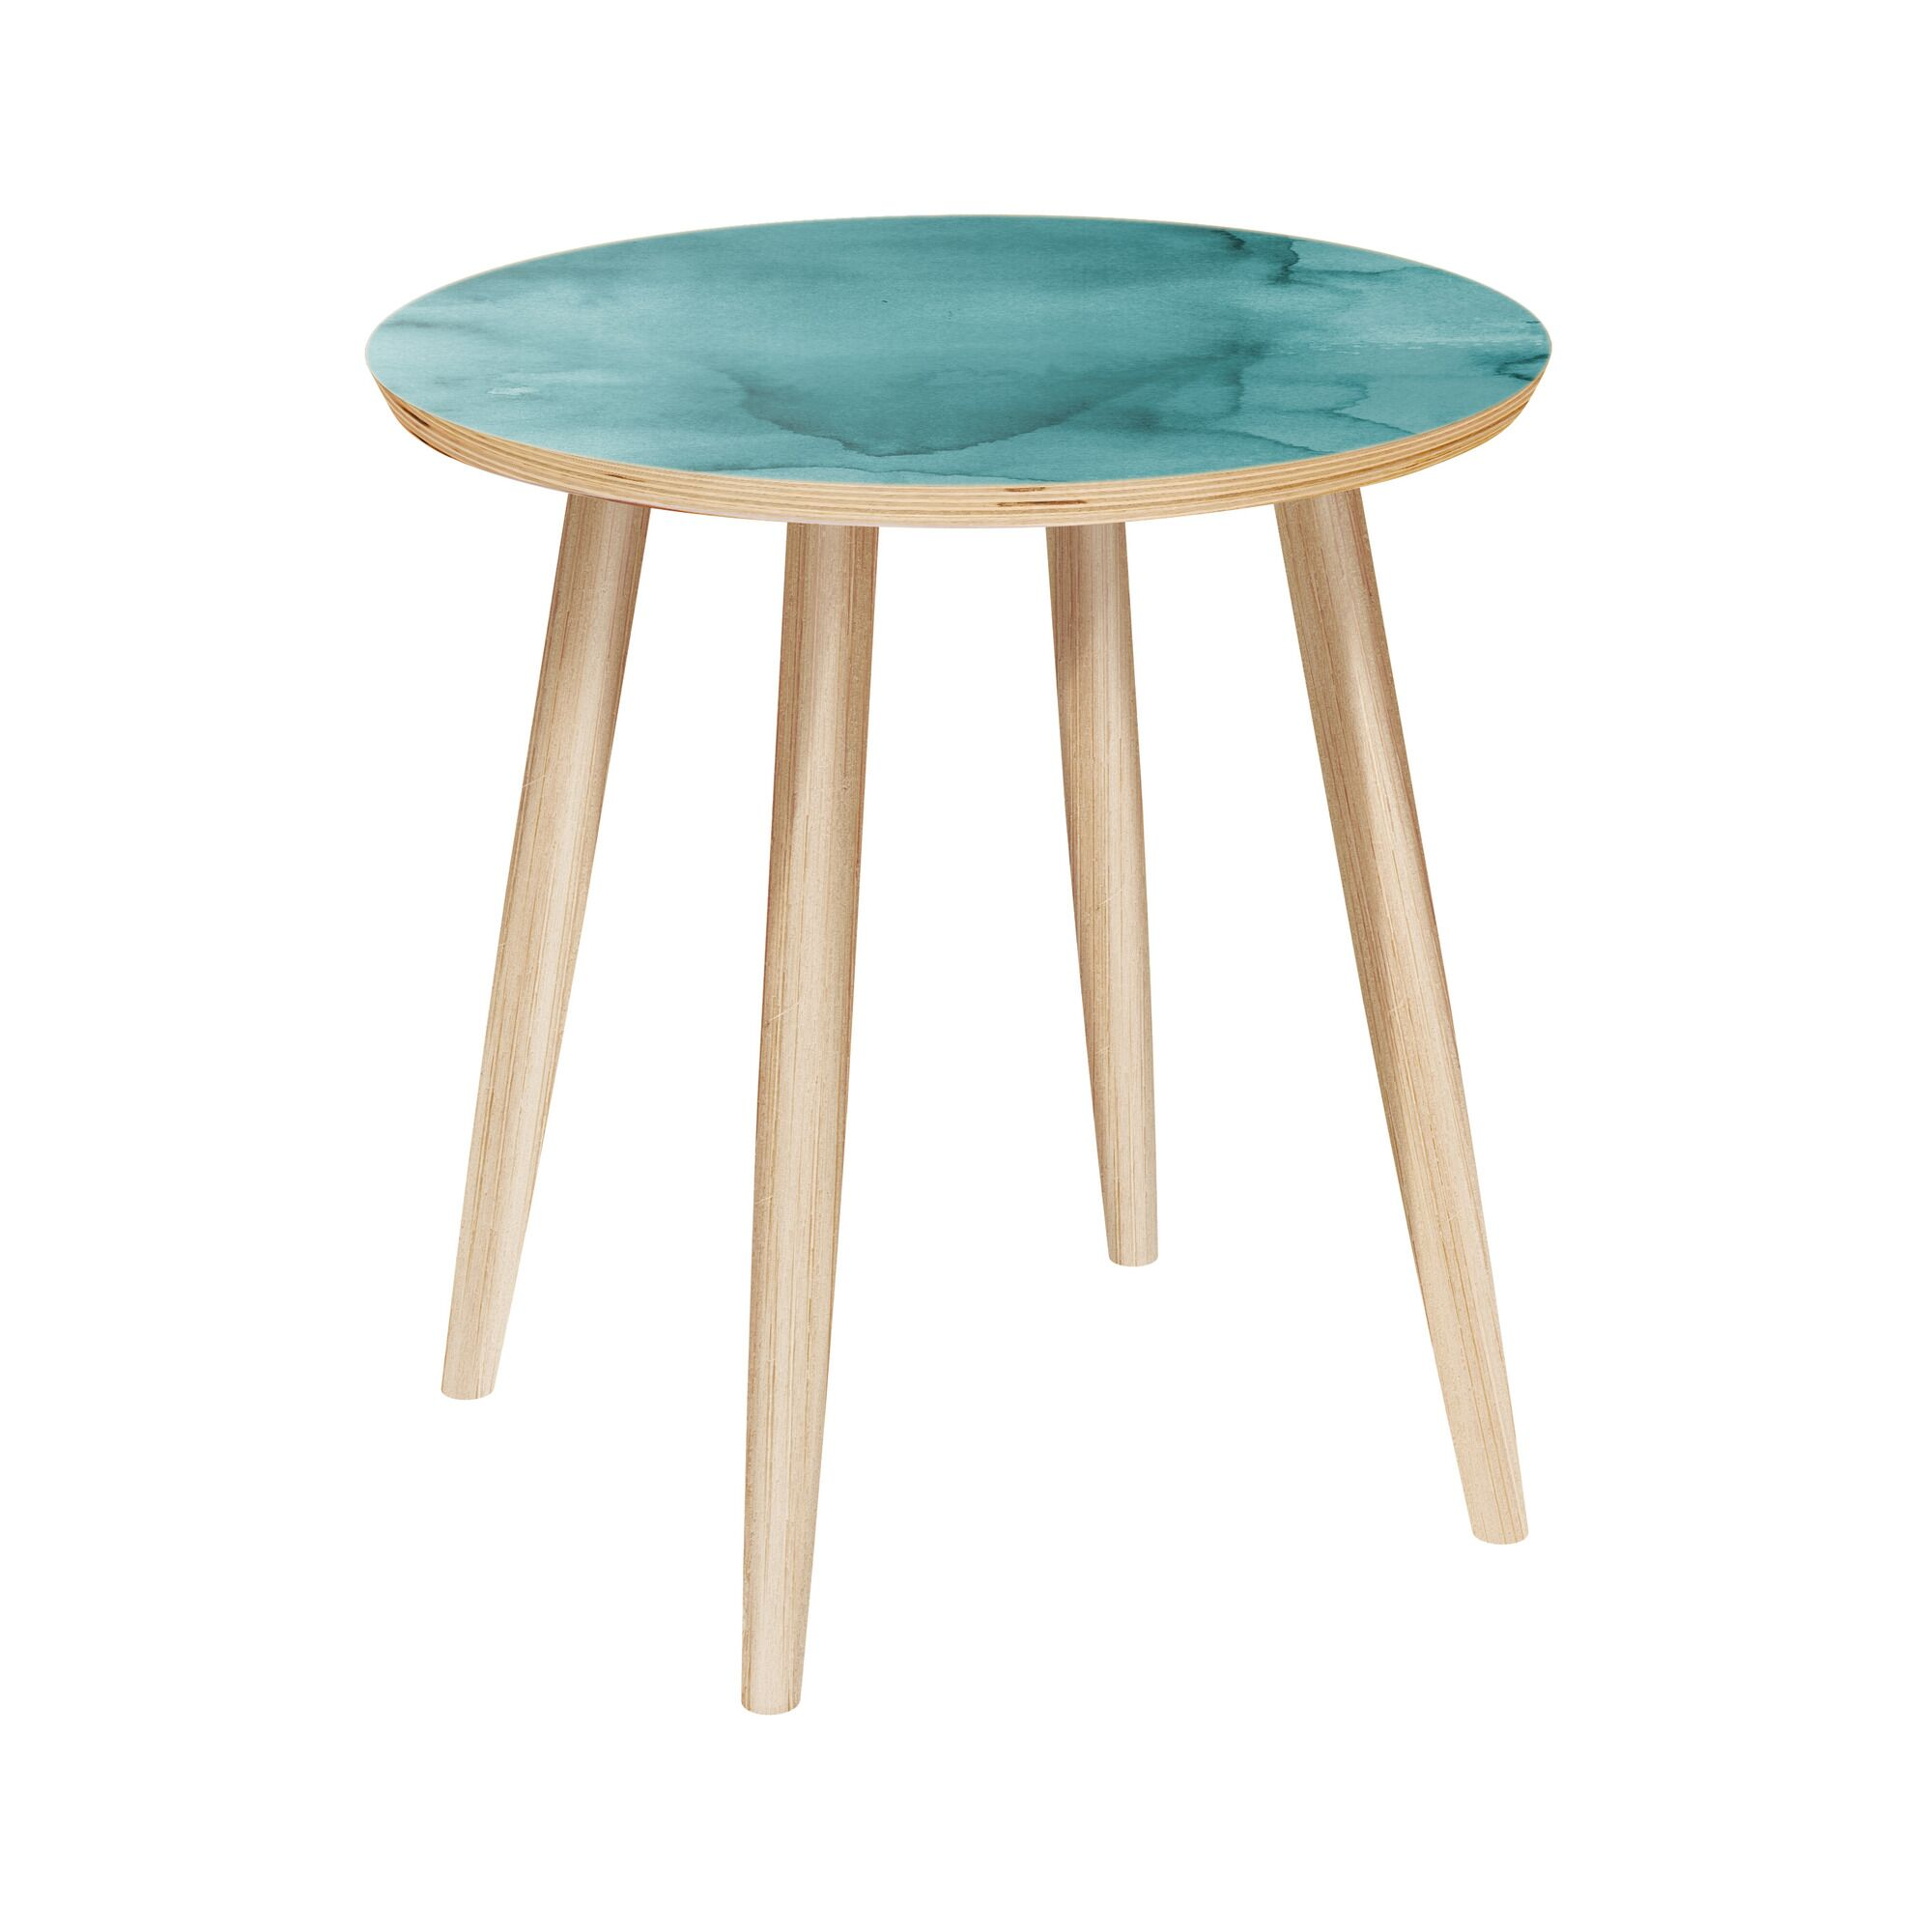 Larene End Table Table Base Color: Natural, Table Top Color: Turquoise